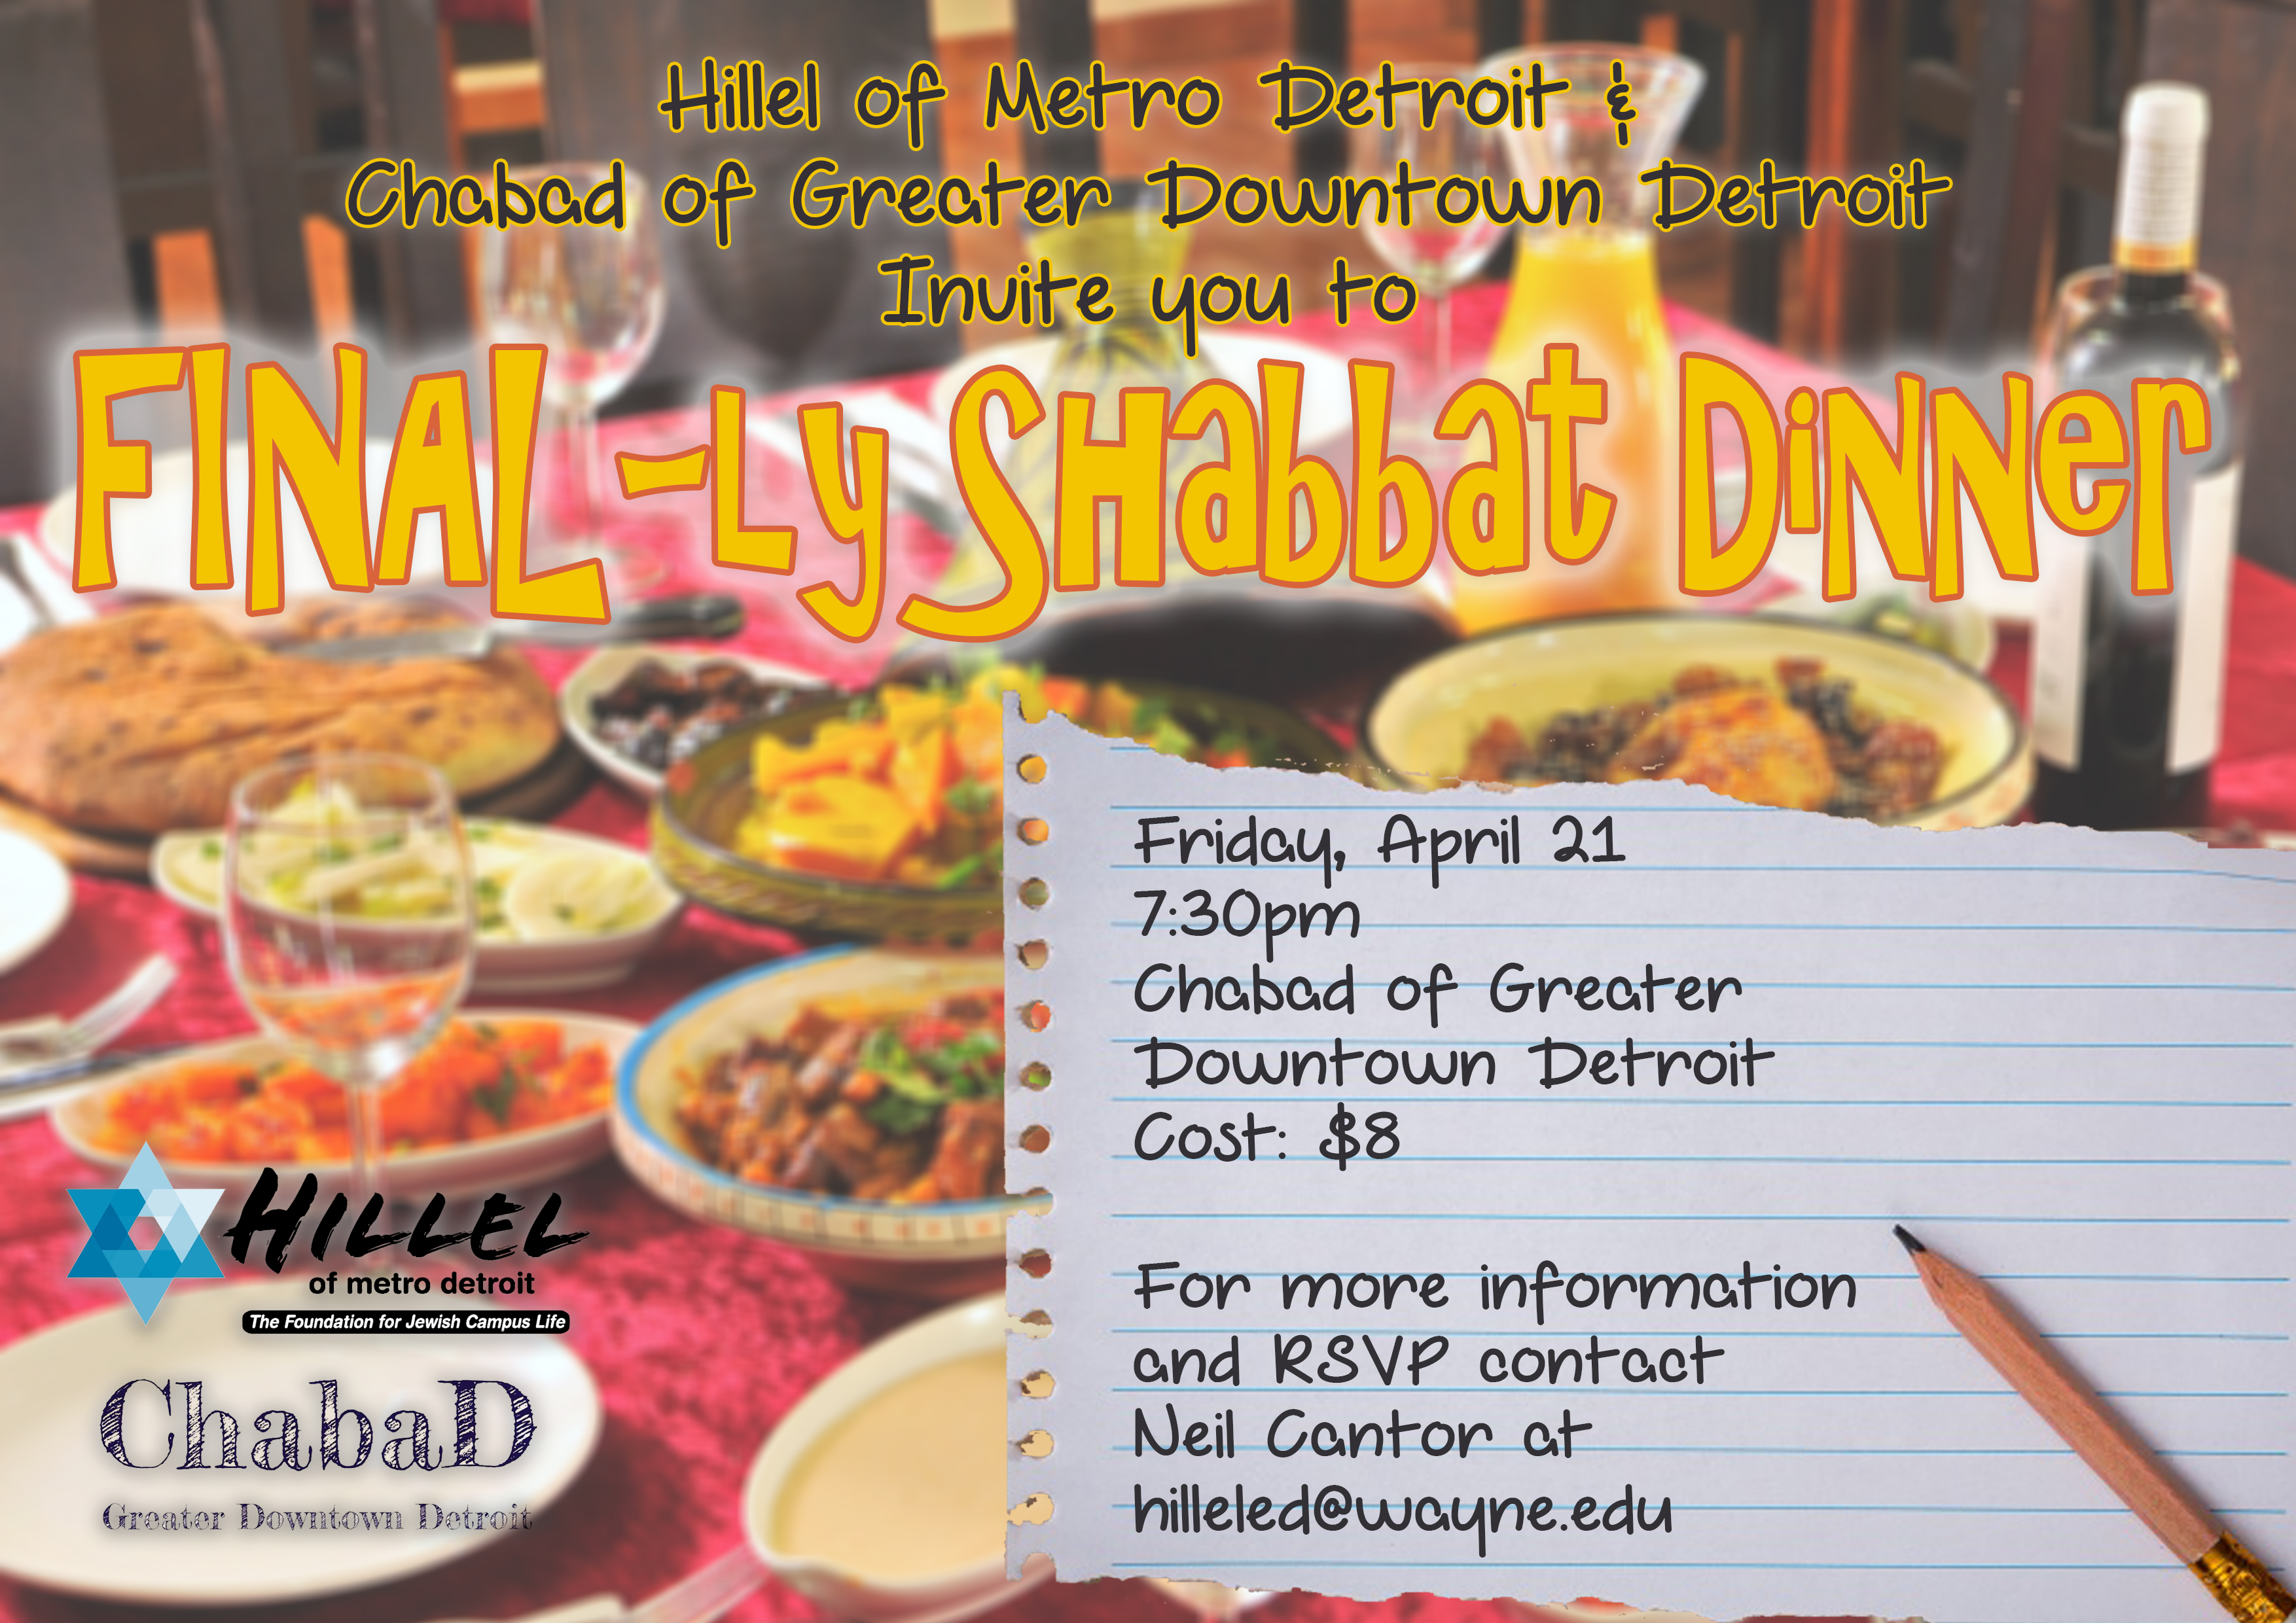 FINAL-ly shabbat dinner - flyer